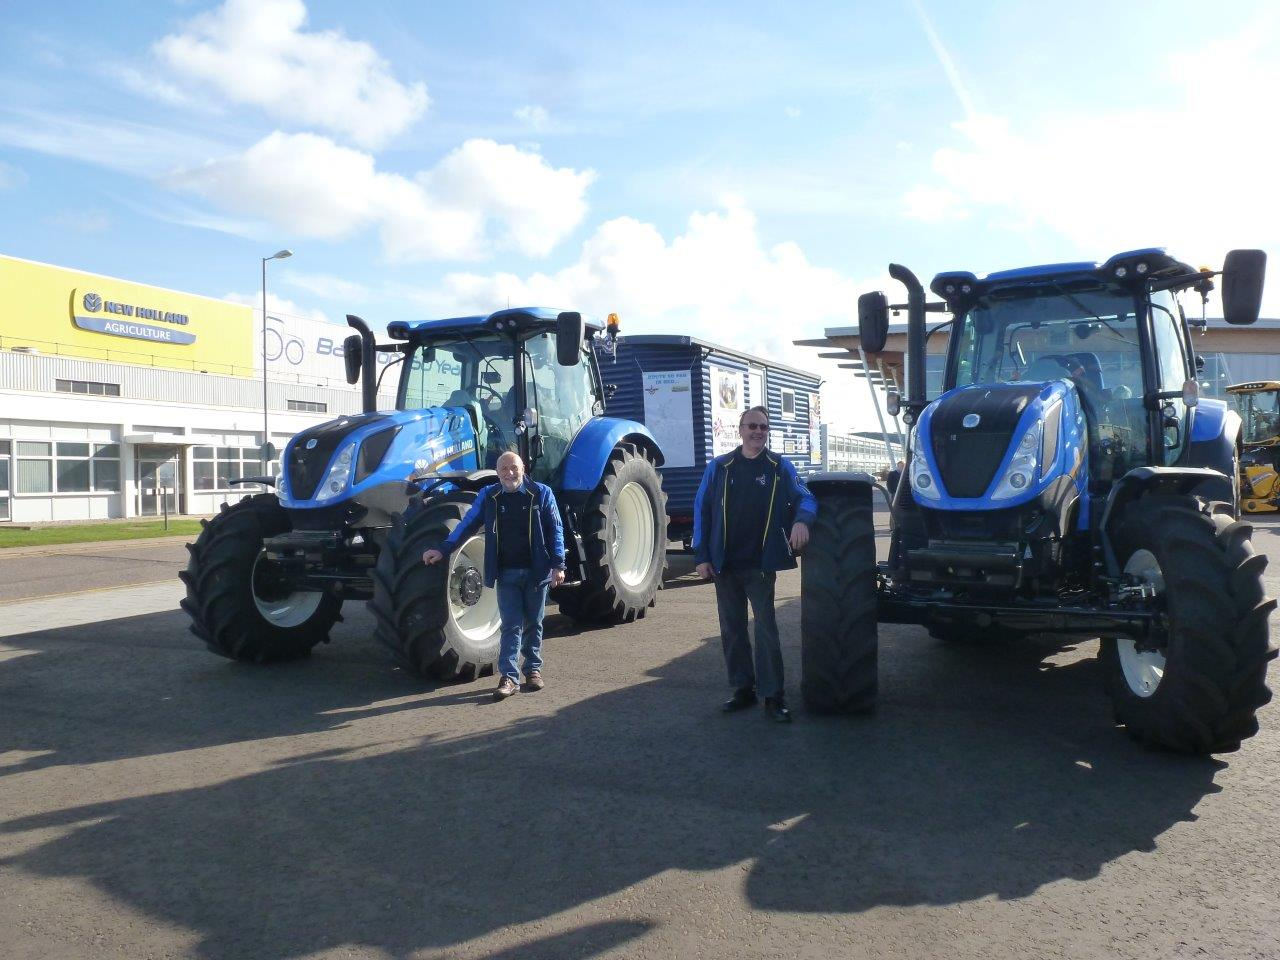 Tractor enthusiasts raise £13,000 after 5,000 mile tractor journey